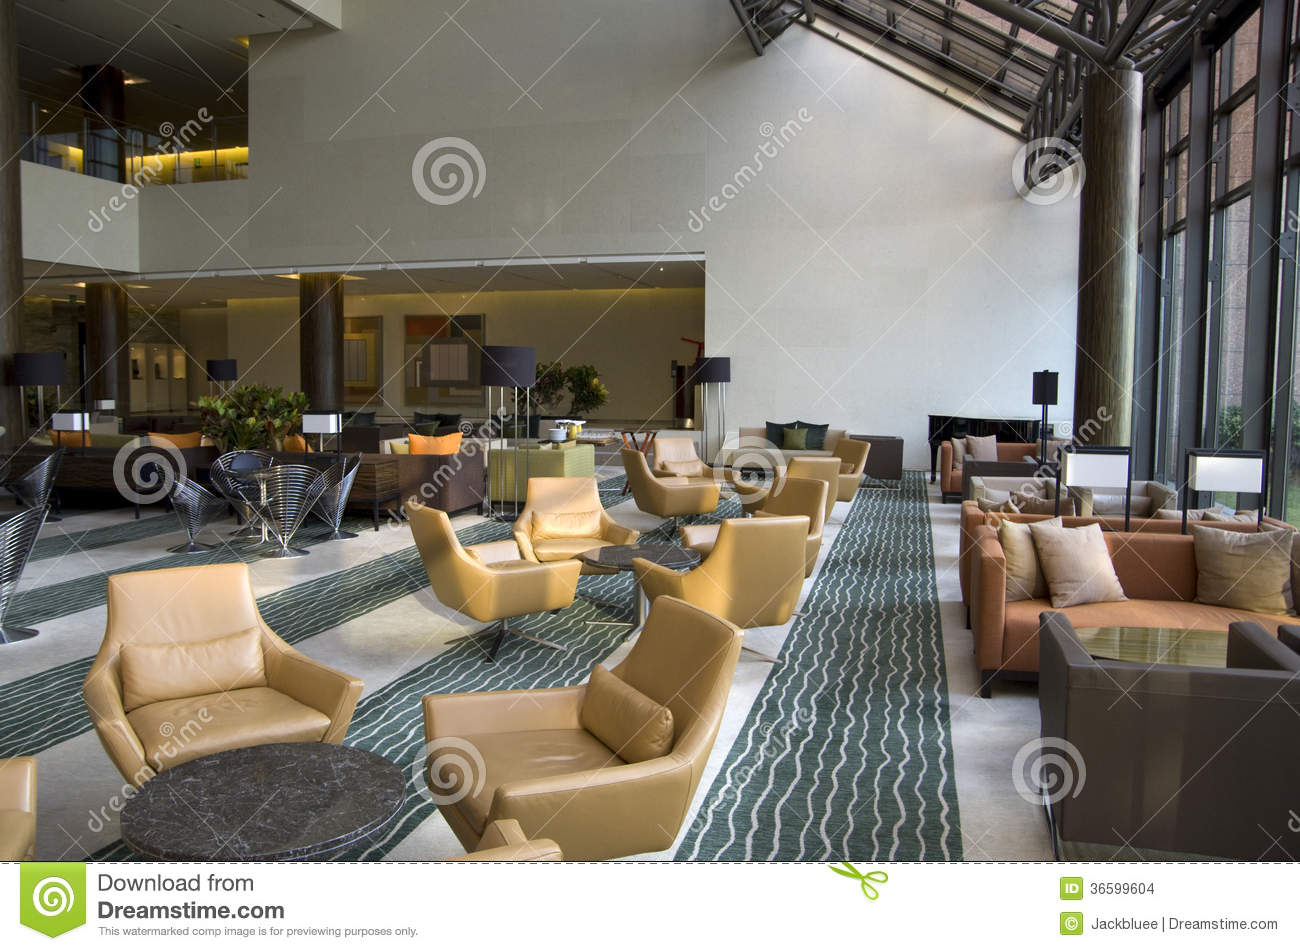 Hotel lobby lounge bar stock photo. Image of lounge, grace ...